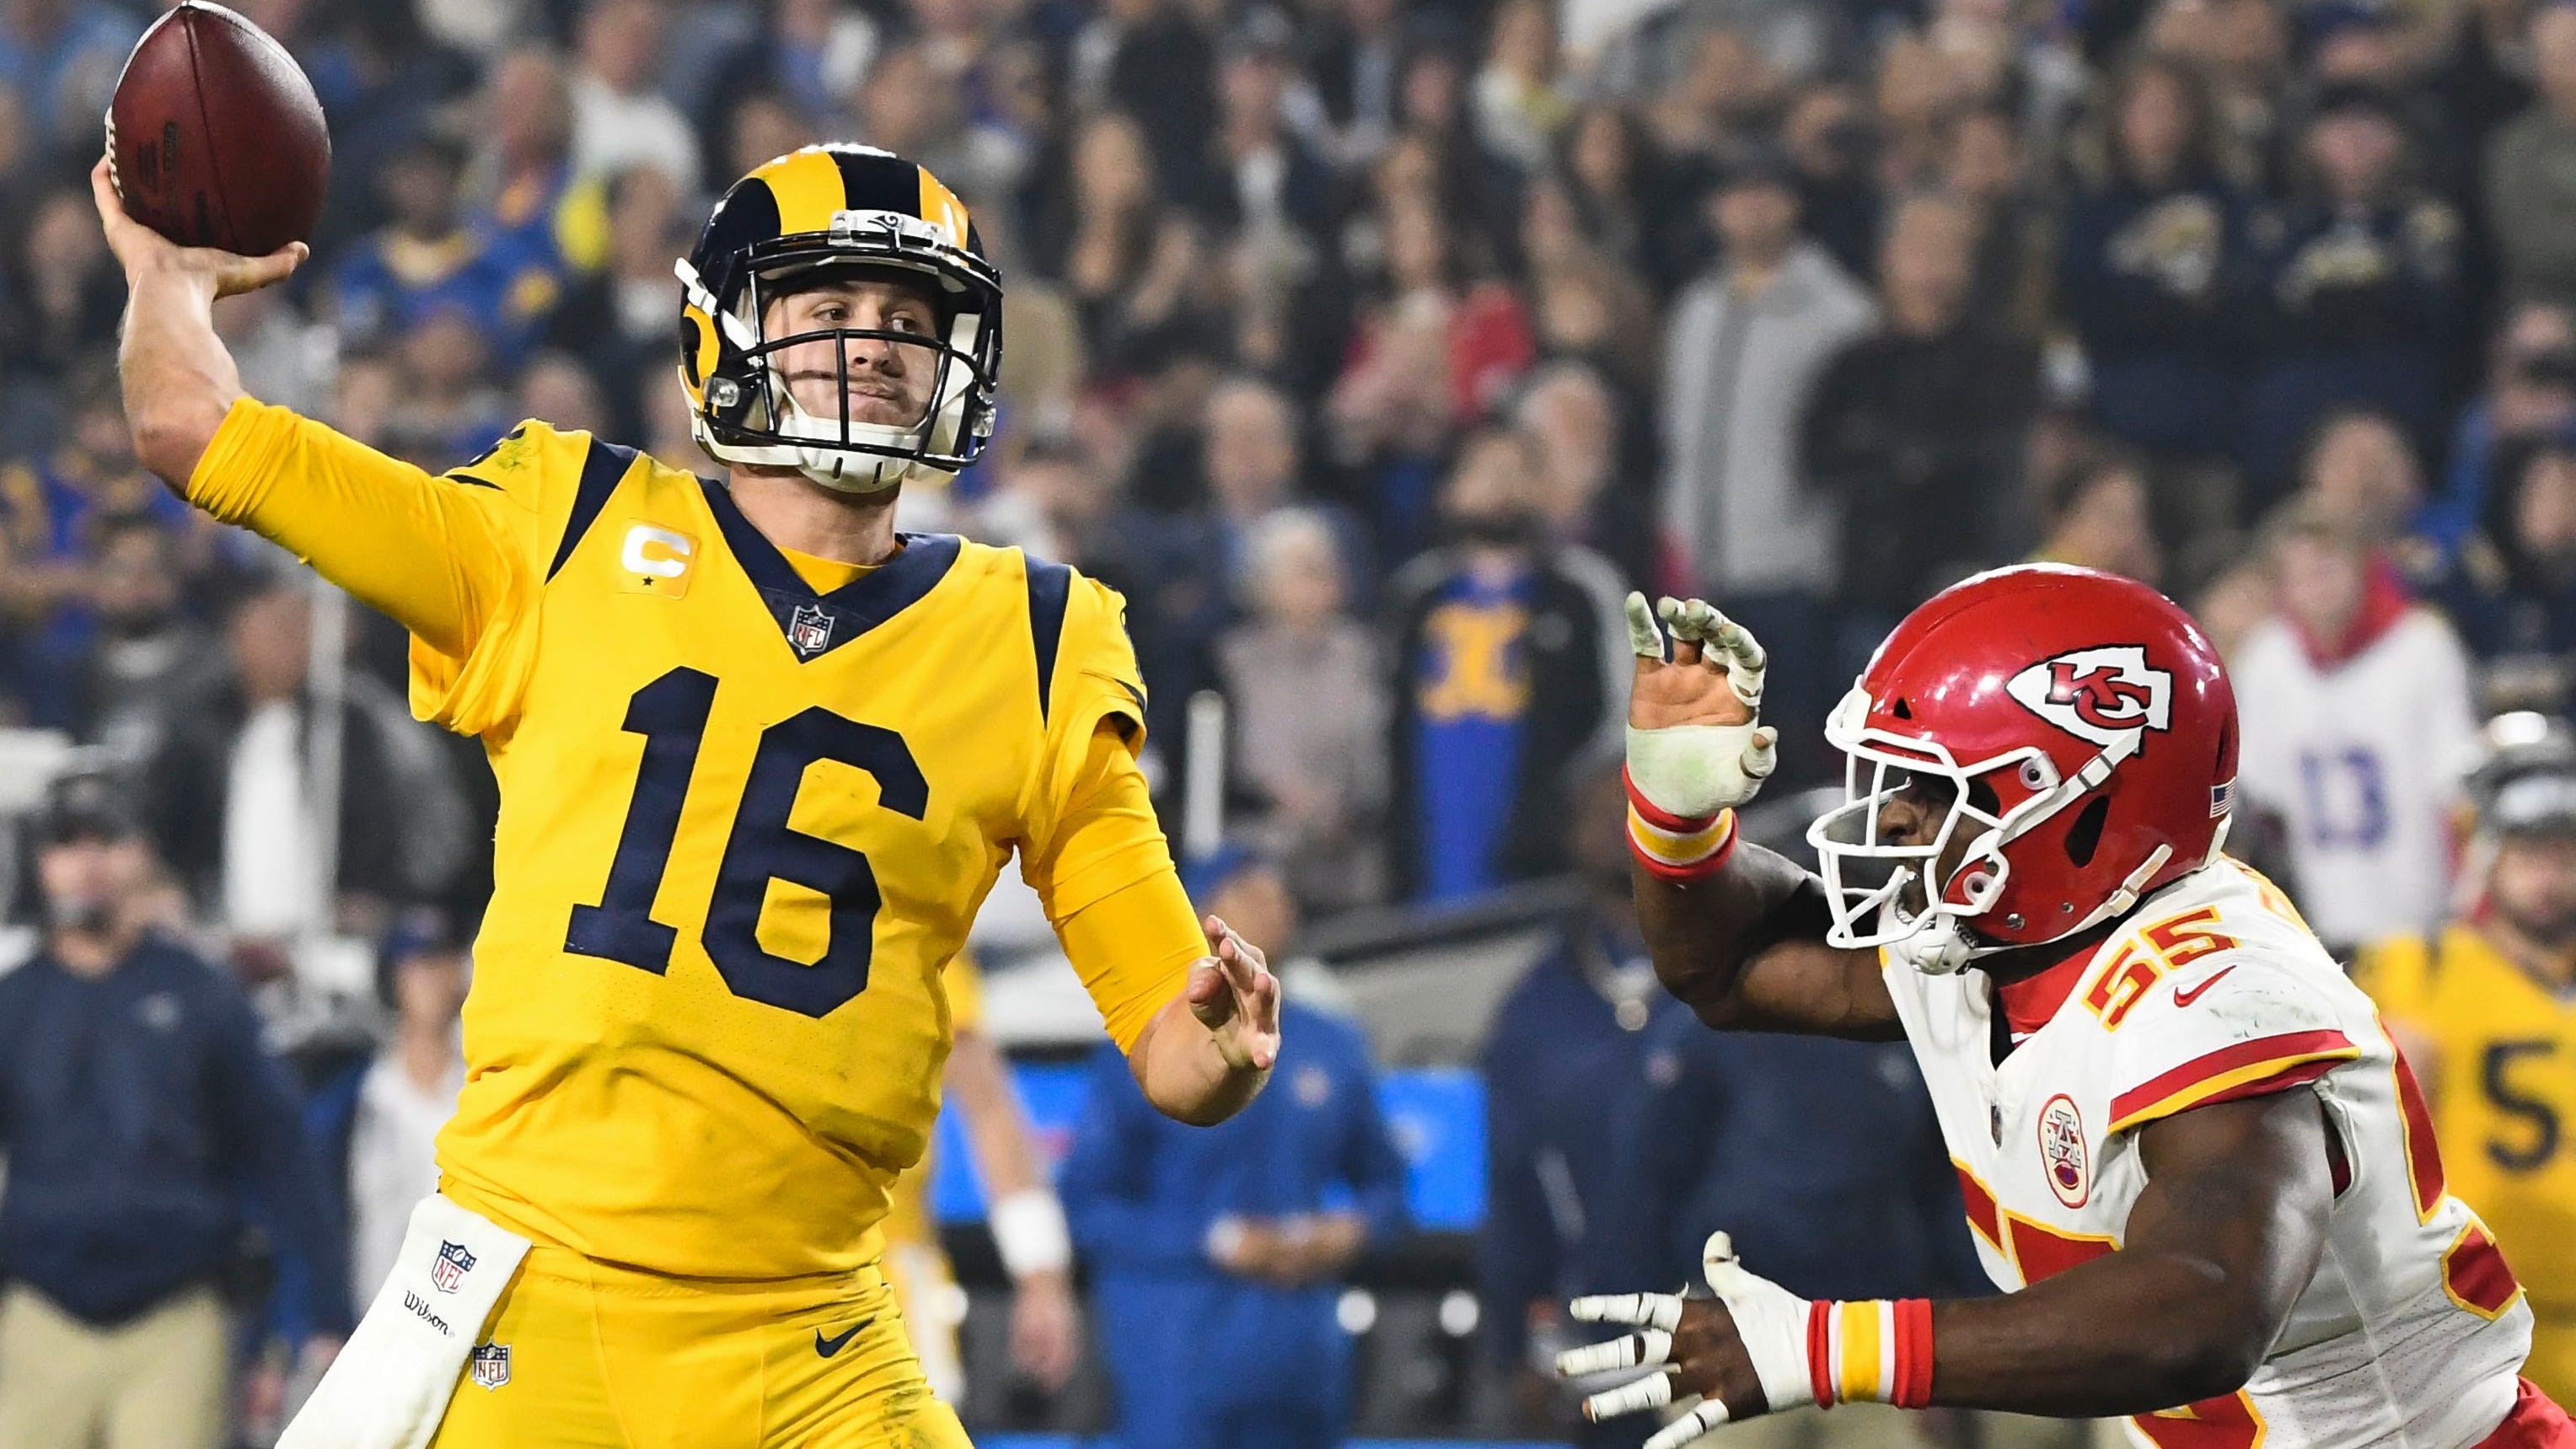 Jared Goff threw for 4 TDs and 413 yards in the win.